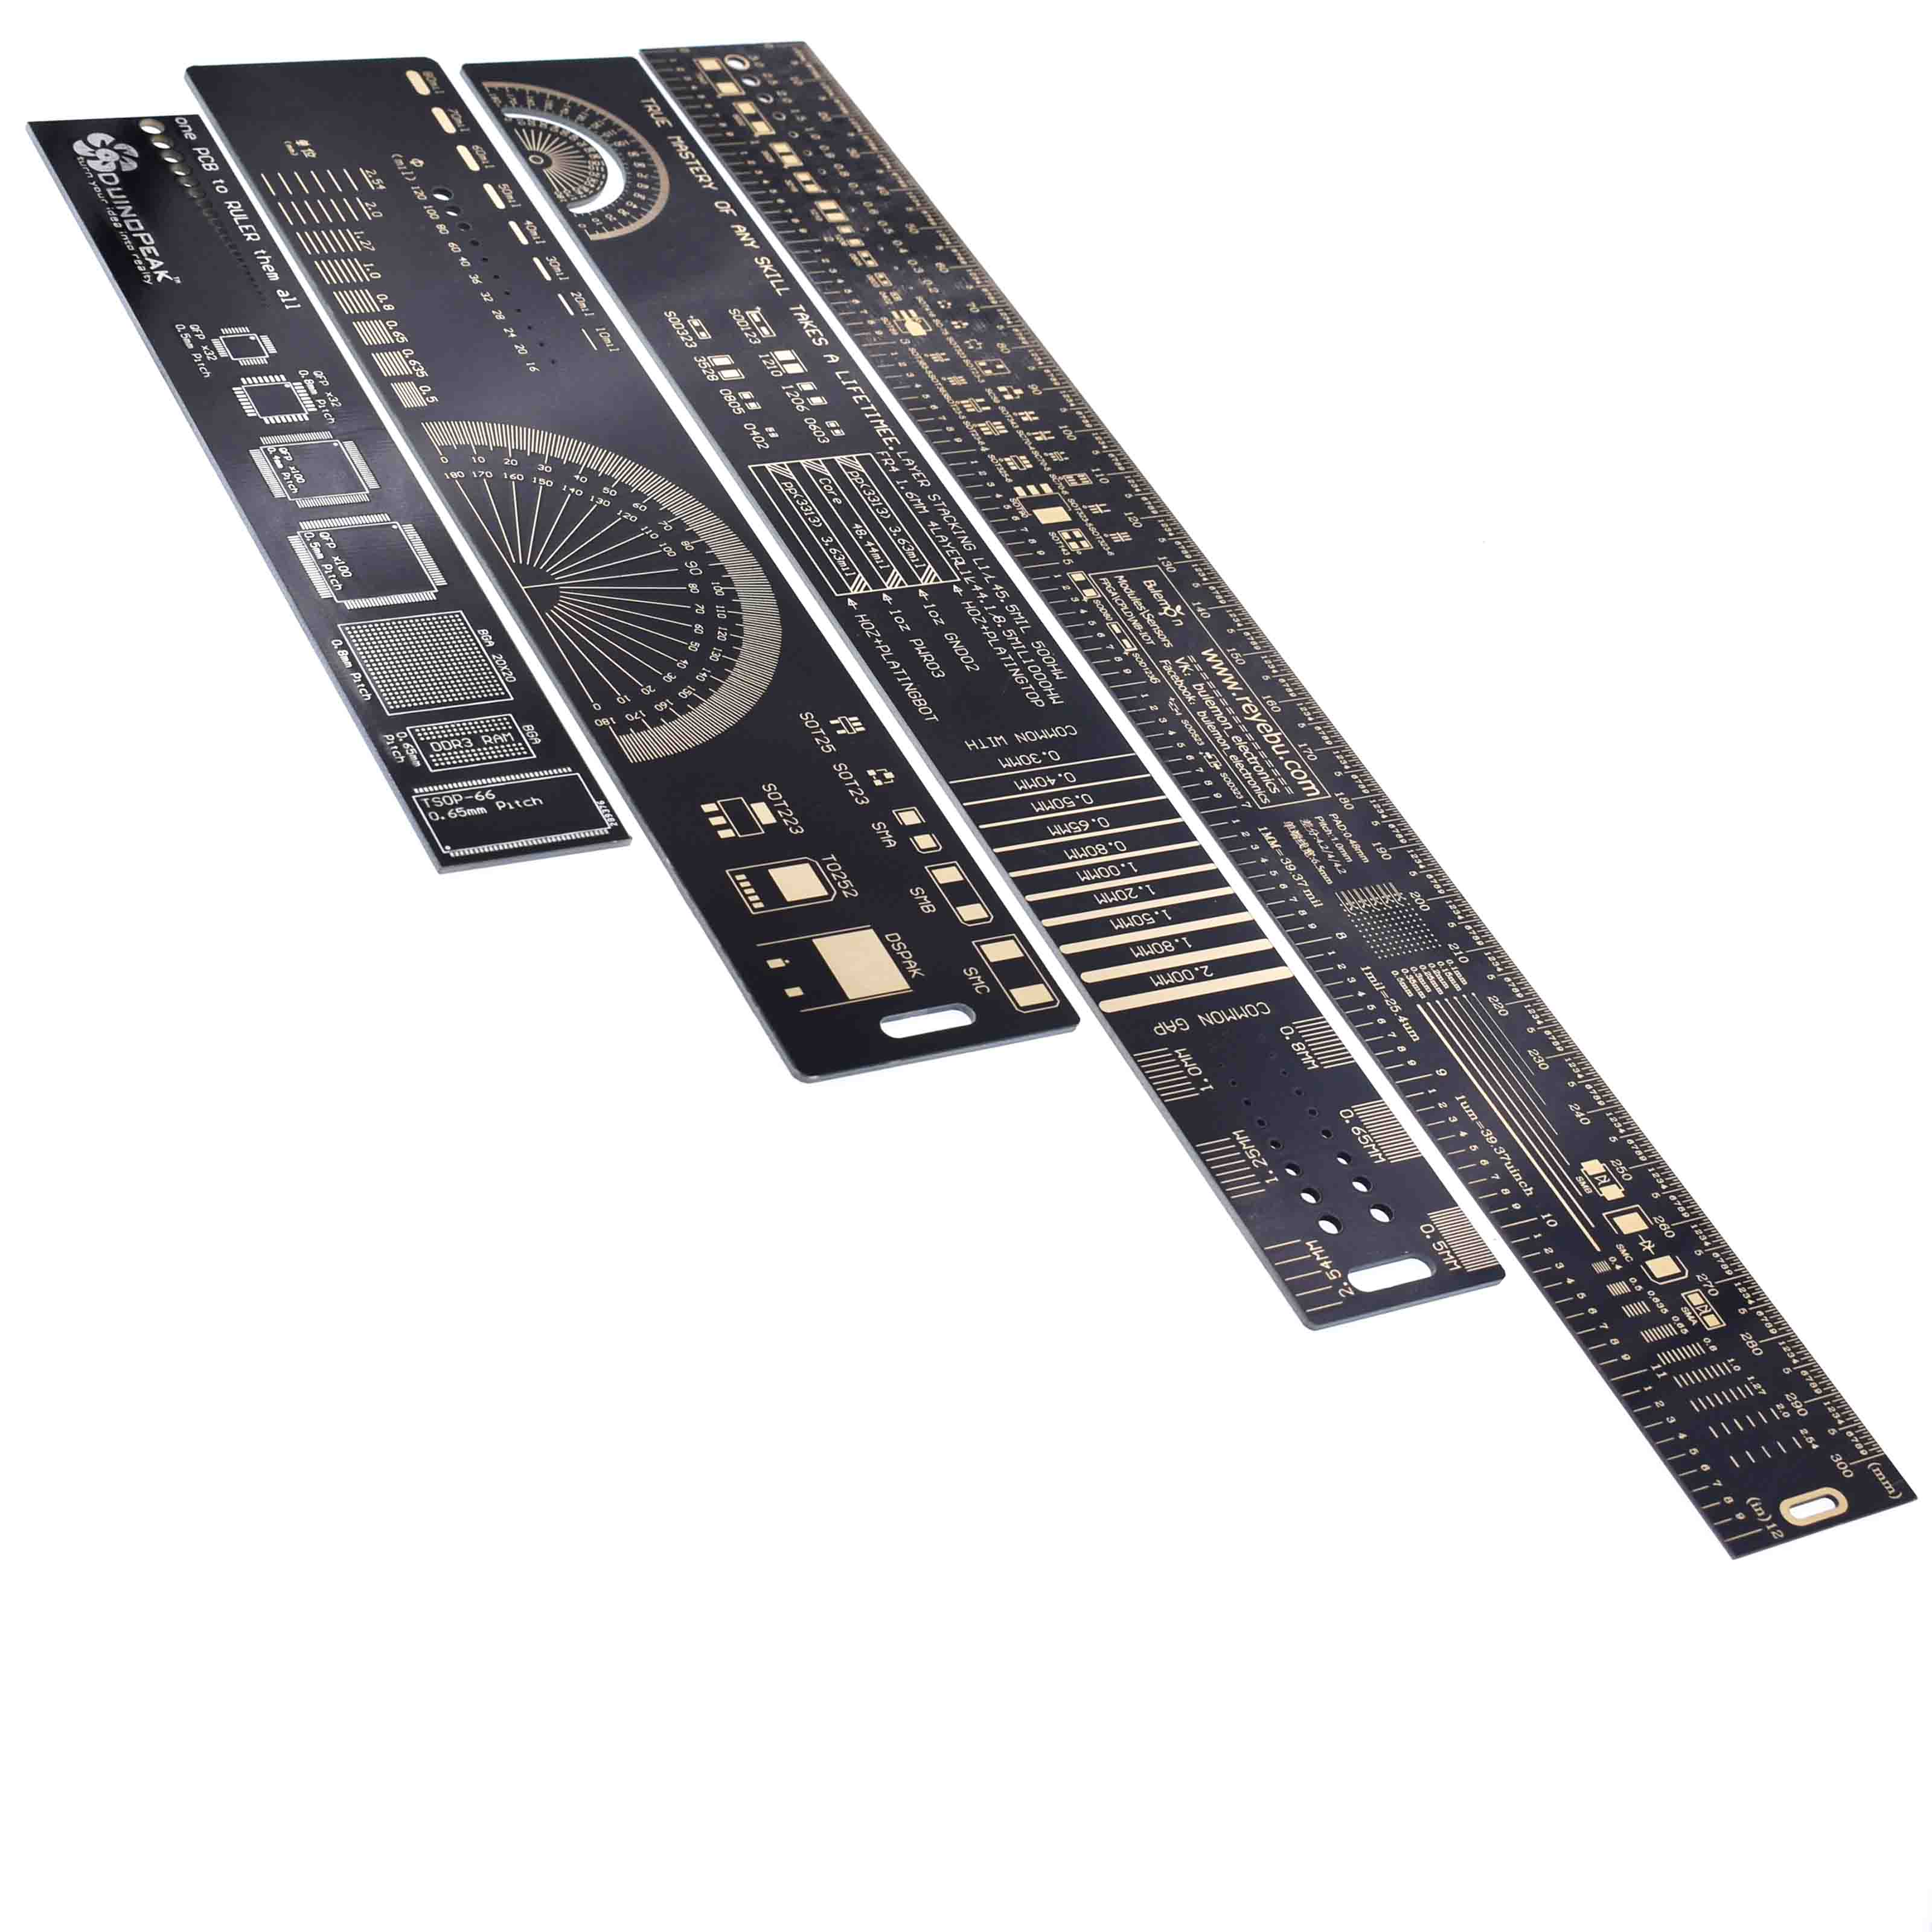 20cm 7.8 Inches Multifunctional PCB Ruler Measuring Tool Resistor Capacitor Chip IC SMD Diode Transistor Package 180 Degrees